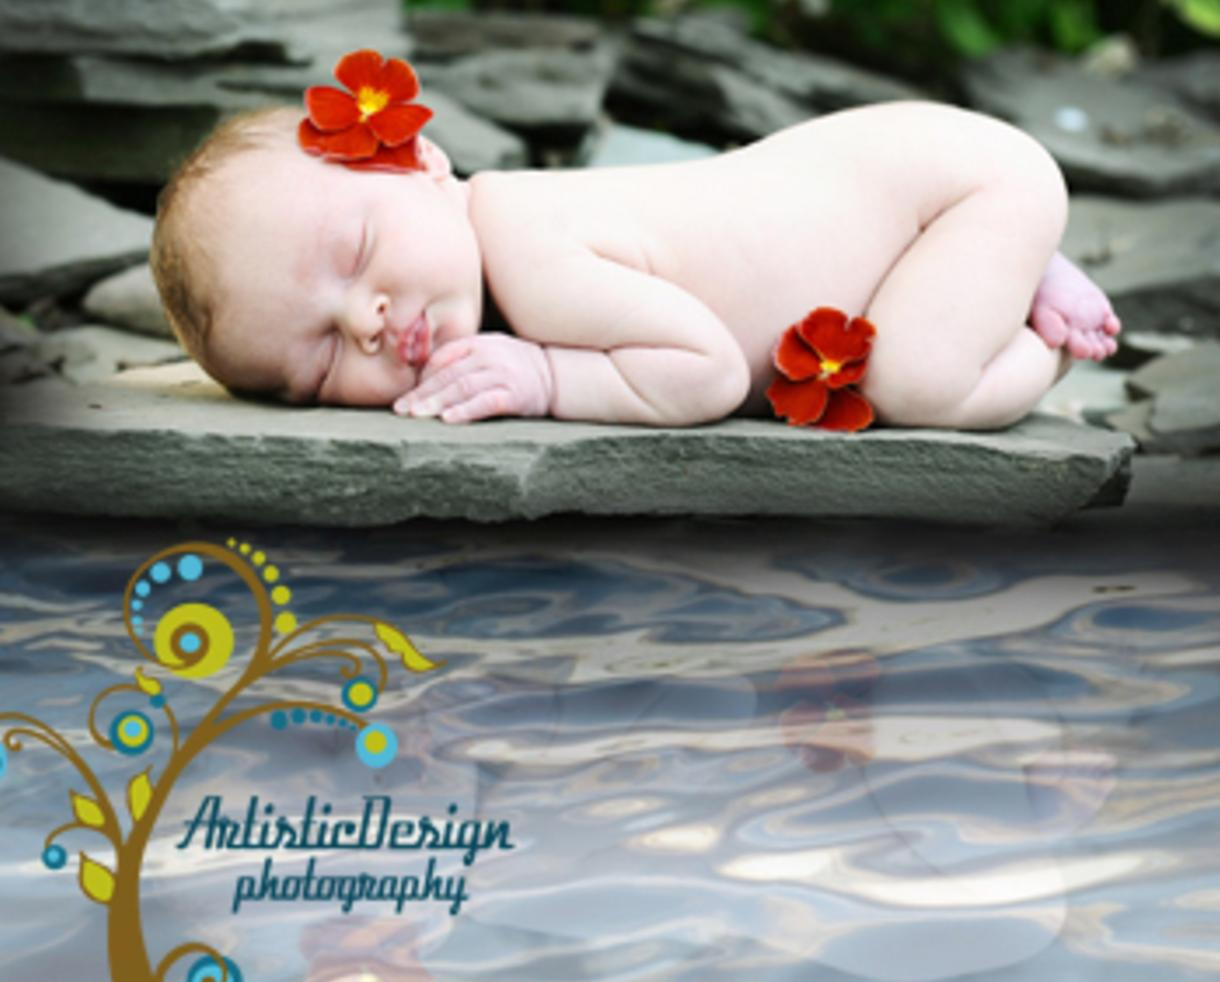 $99 Photo Shoot & DigitaI Images from Award Winning Local Child Photographer - Artisic Design Photography (79% Off)